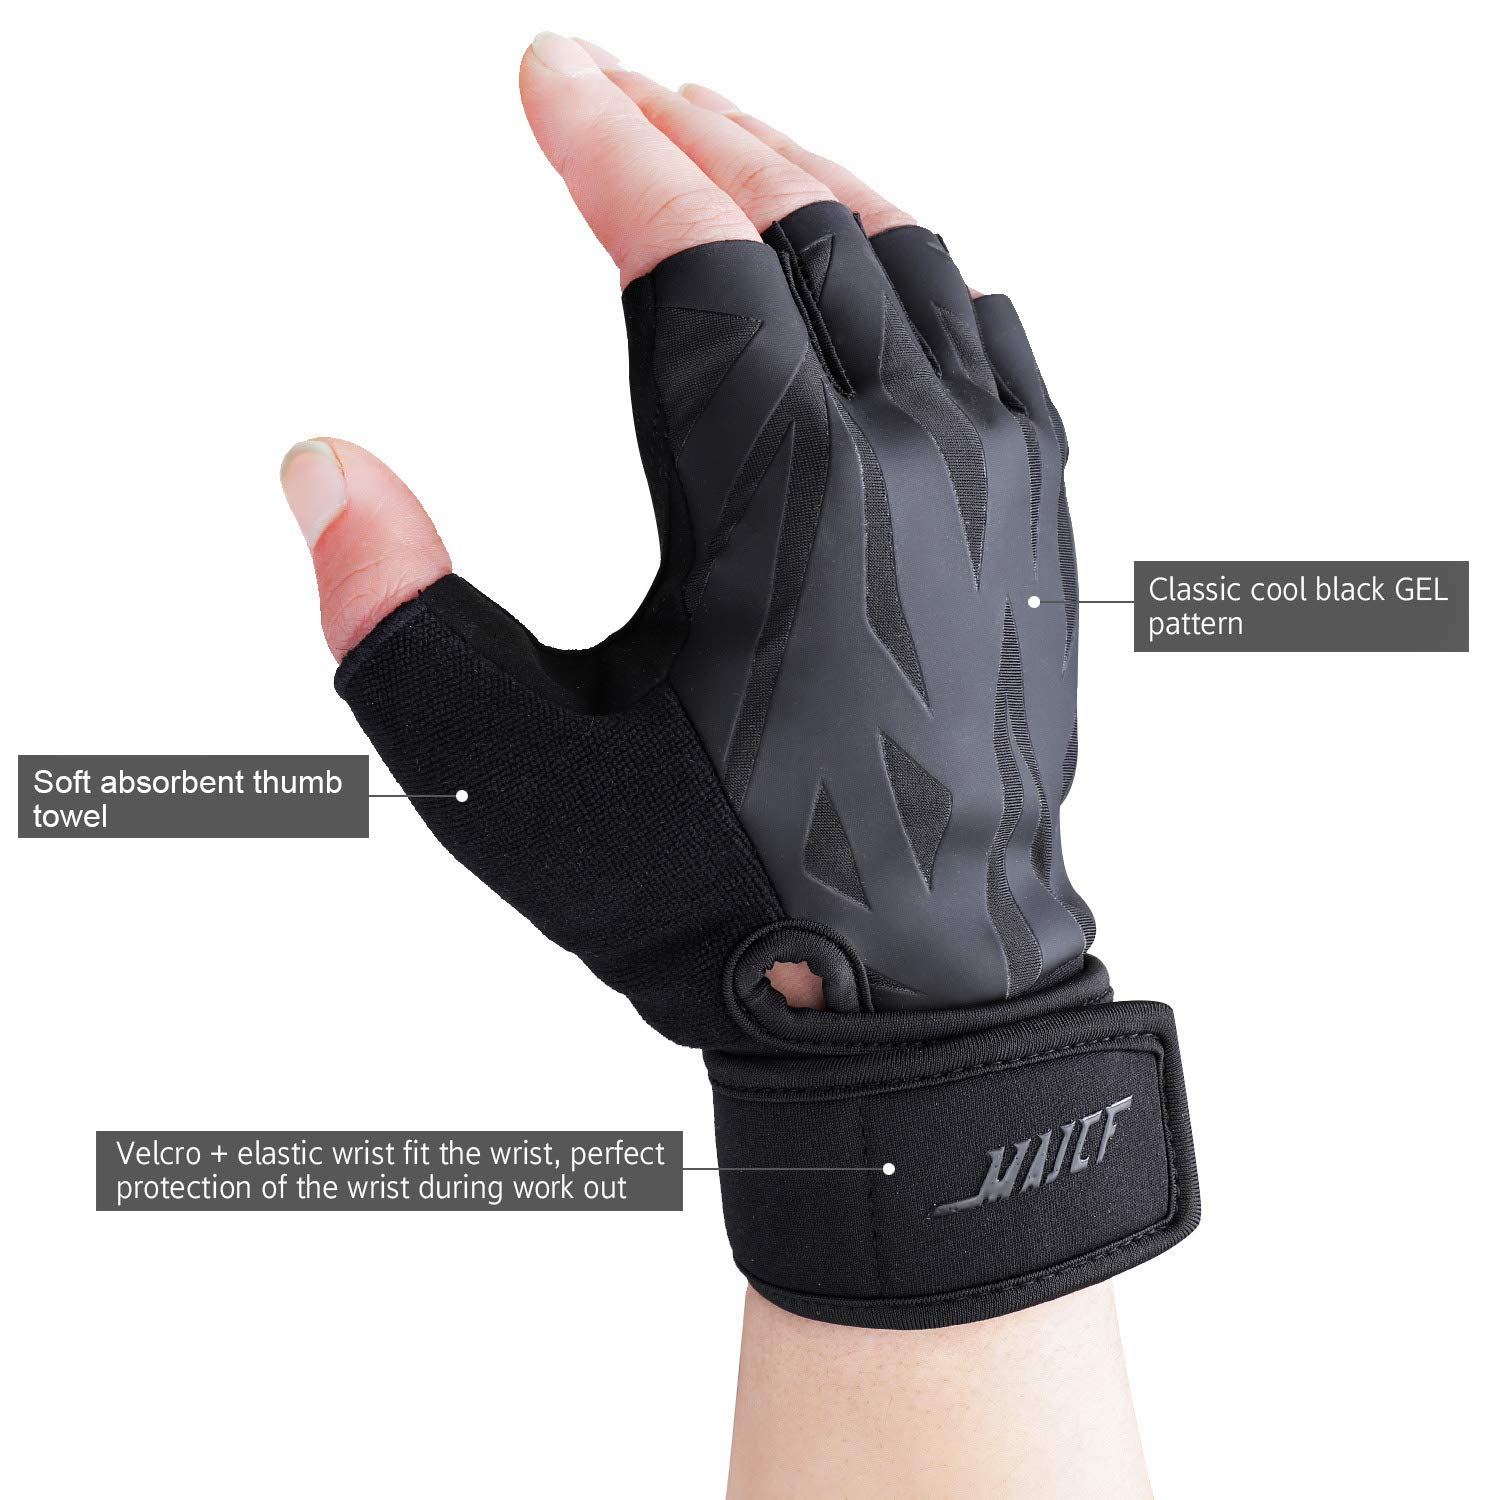 MAJCF Workout Gloves Gym Gloves for Training Full Palm Protection Weight Lifting Gloves for Exercise Powerlifting Men /& Women Cycling Fitness Rowing